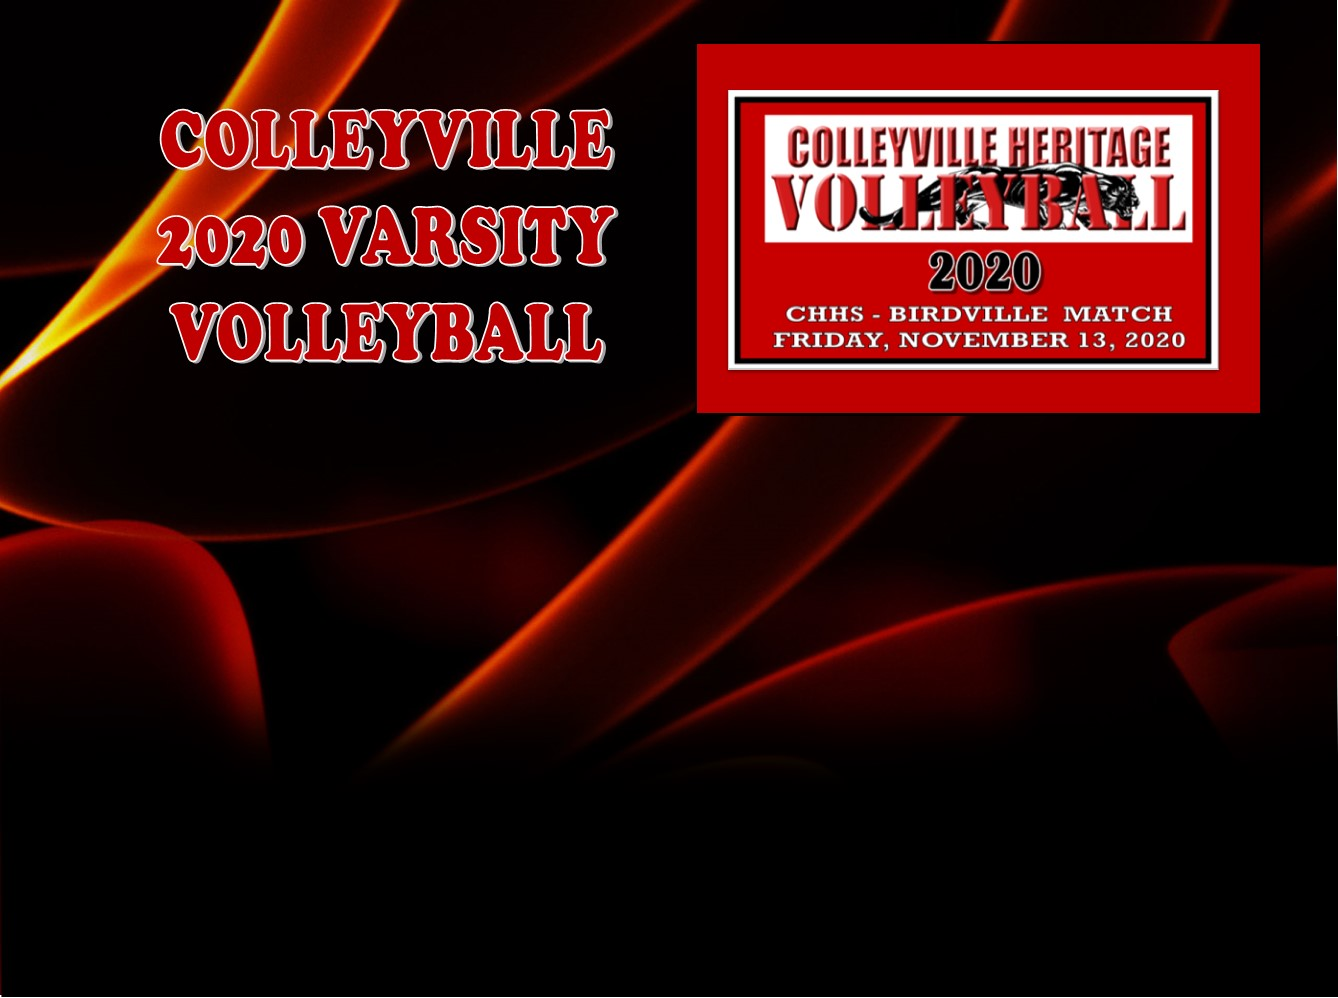 GCISD Volleyball: Colleyville Lady Panthers Rally to Defeat Birdville Lady Hawks 3-2